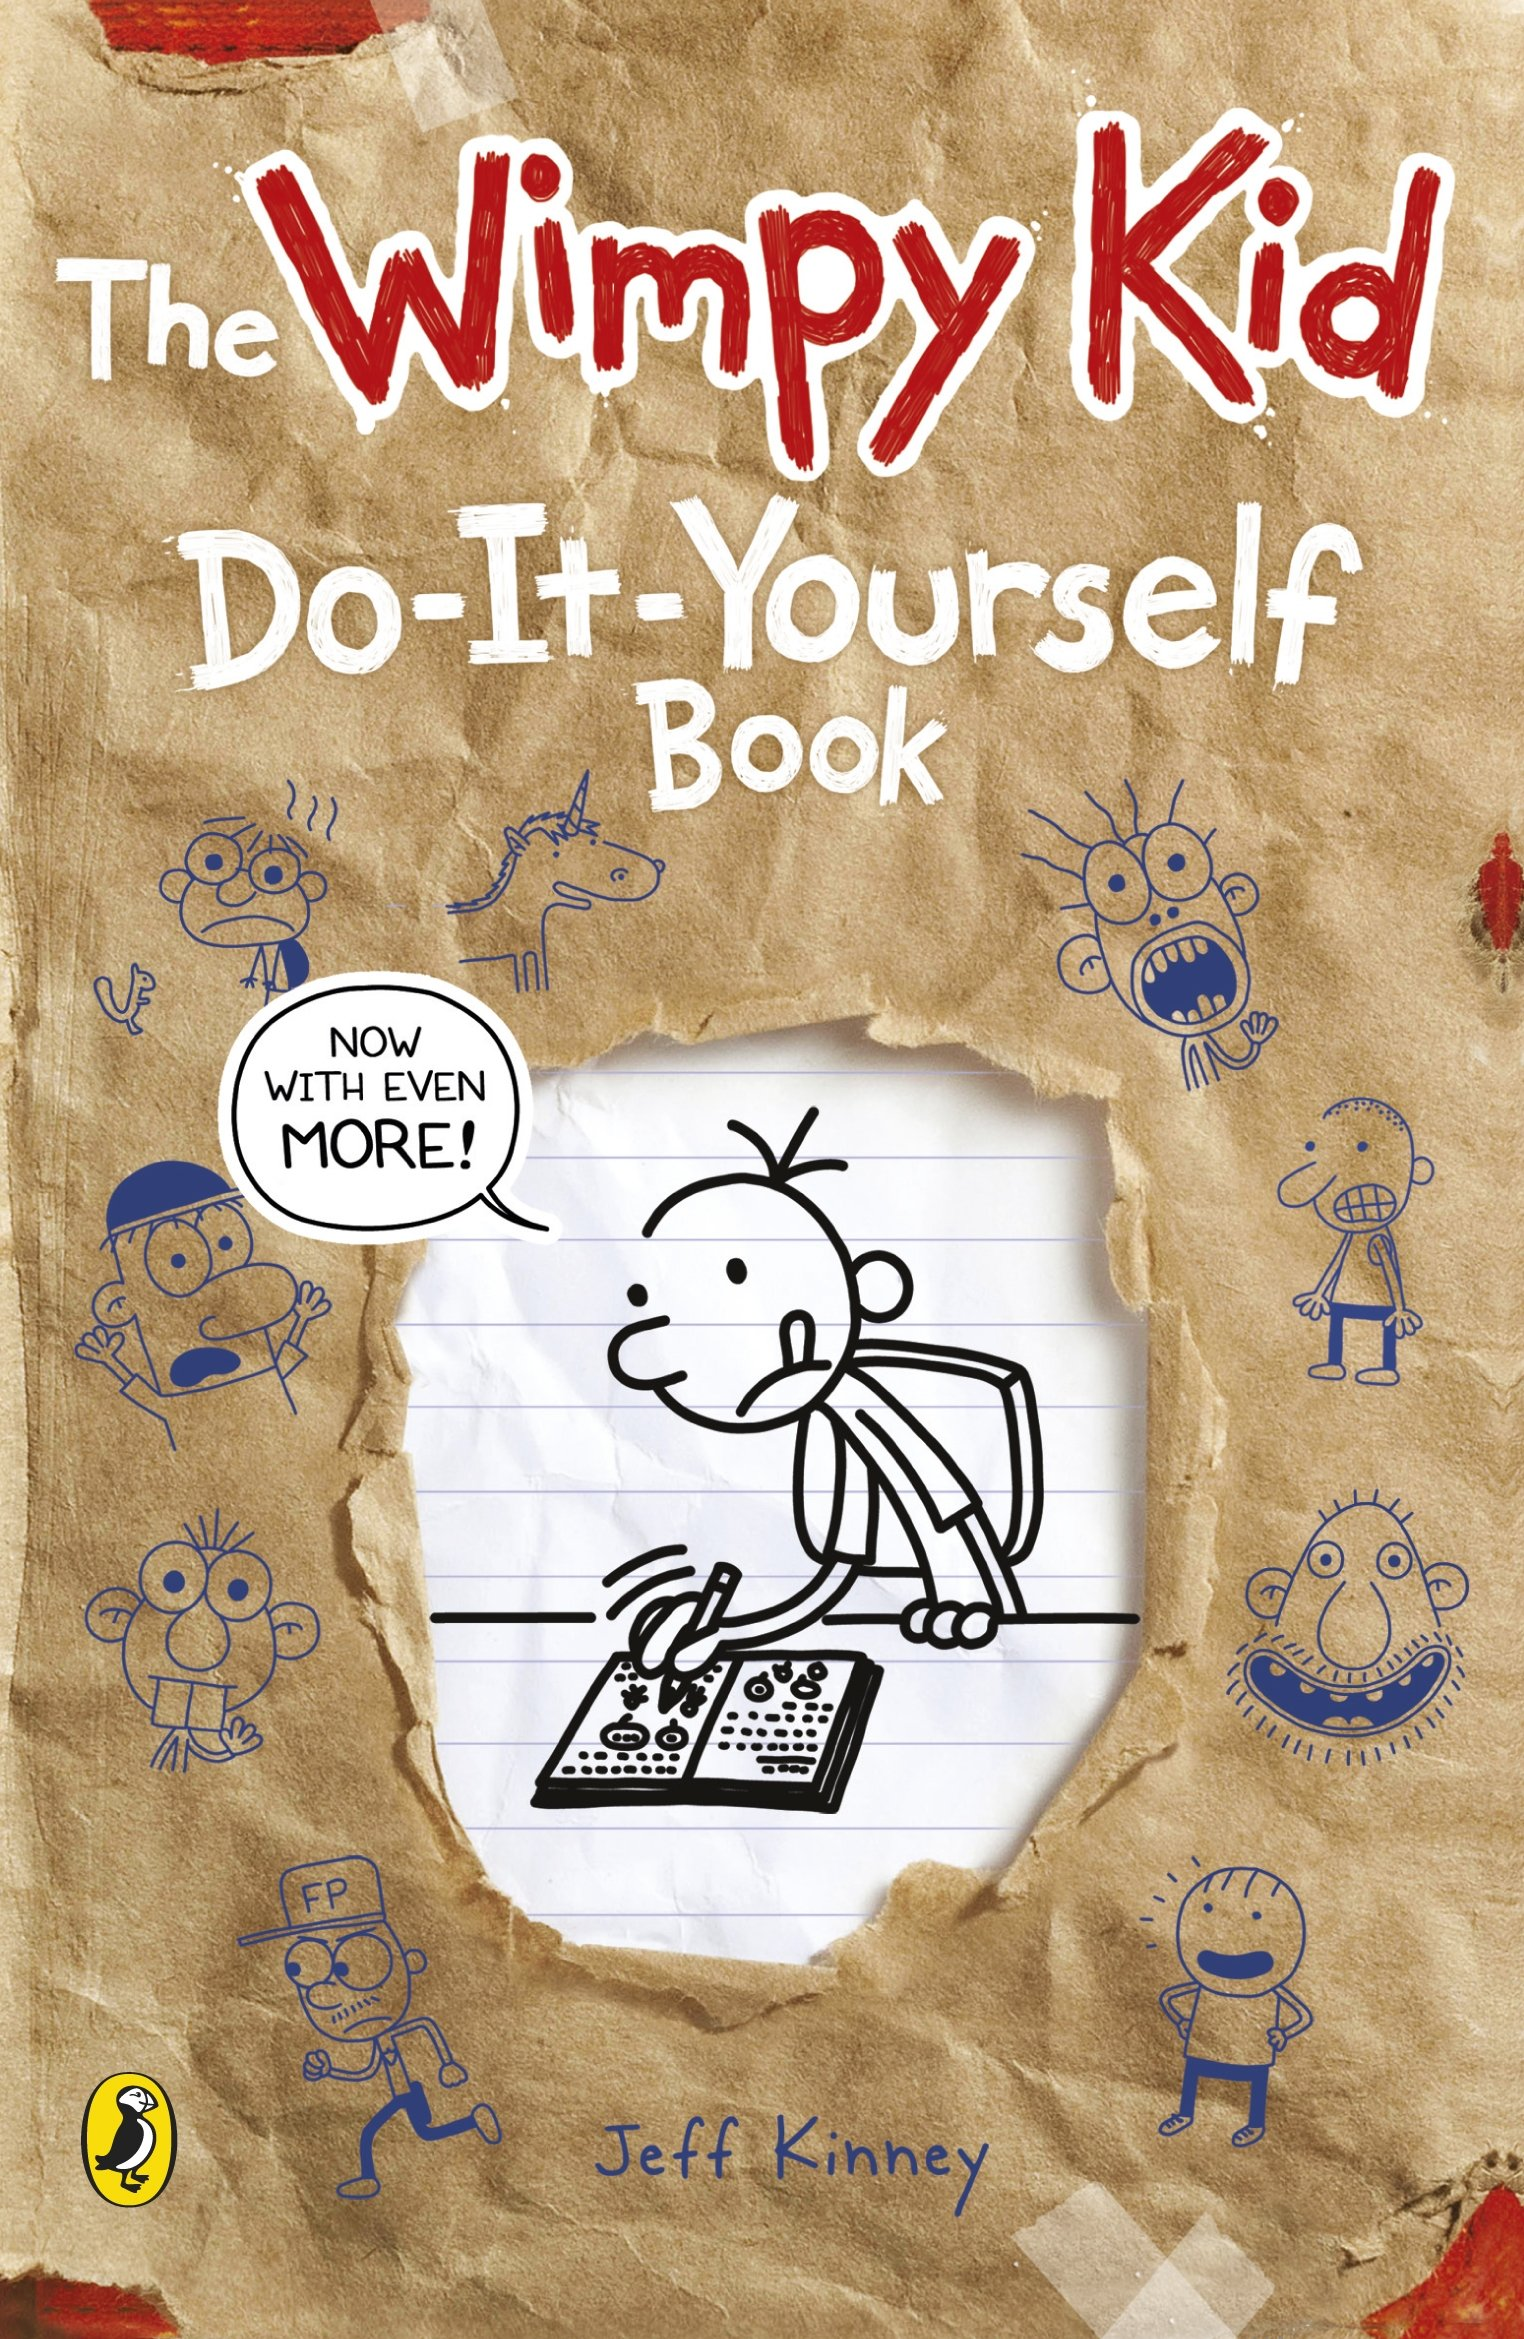 Buy the wimpy kid do it yourself book diary of a wimpy kid book buy the wimpy kid do it yourself book diary of a wimpy kid book online at low prices in india the wimpy kid do it yourself book diary of a wimpy kid solutioingenieria Images